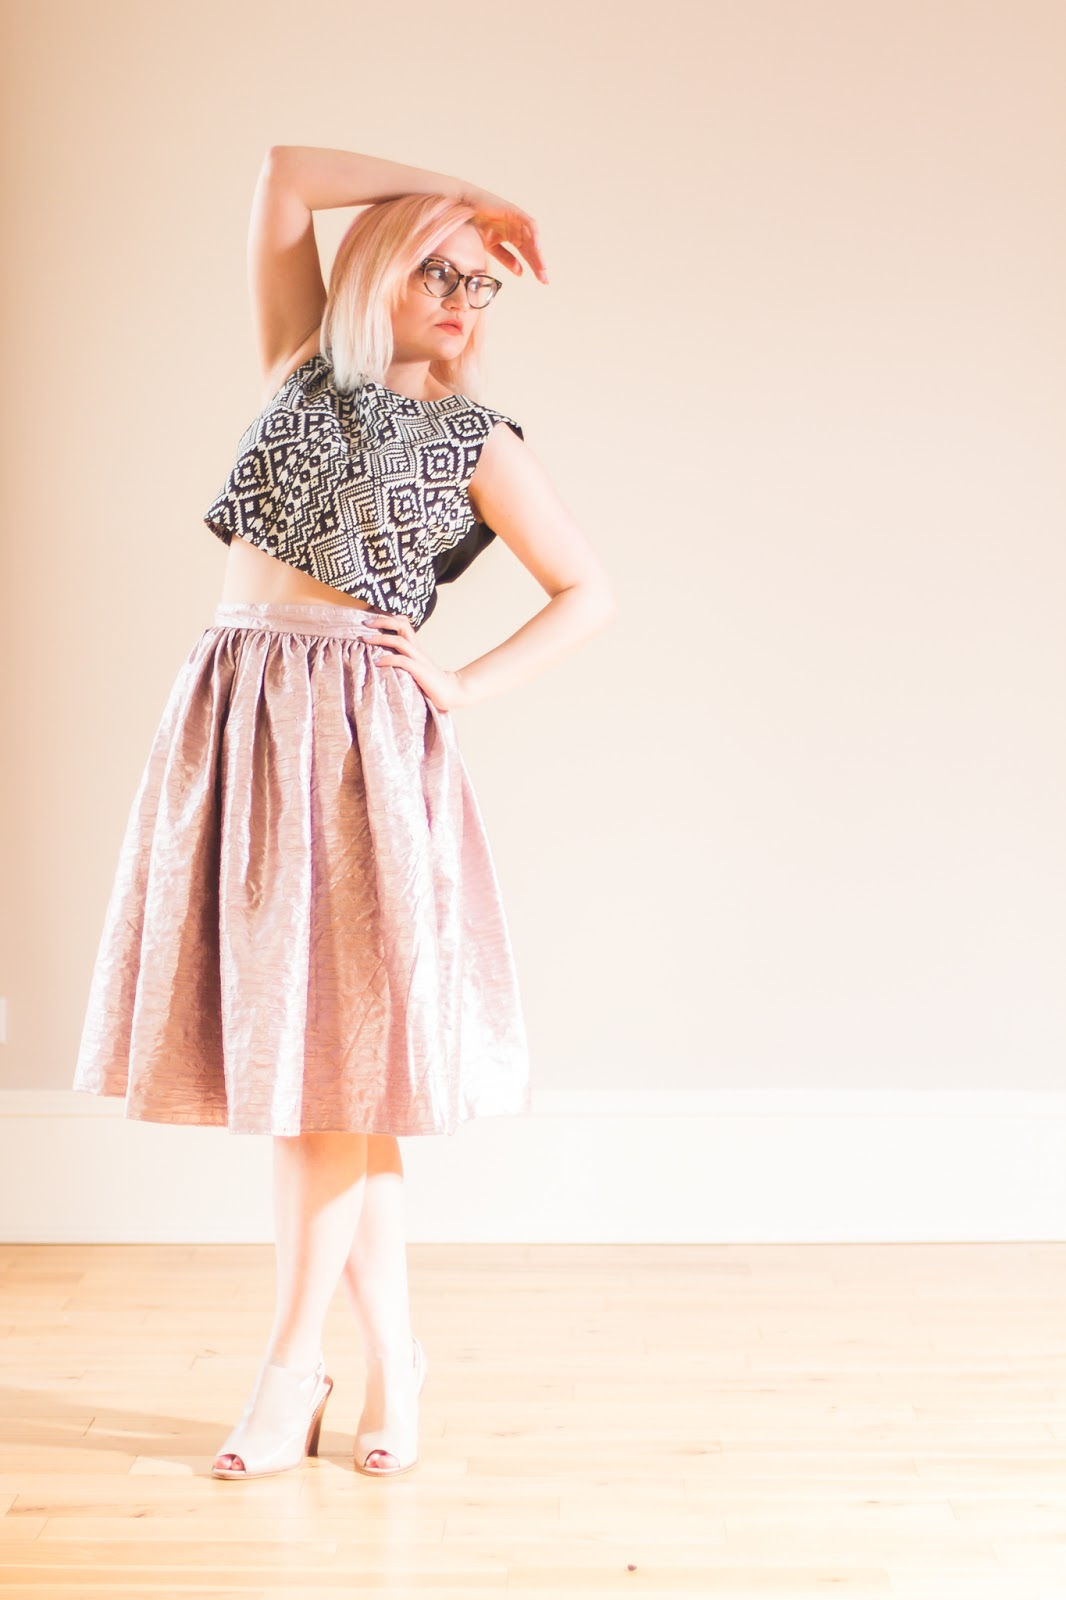 I Dream of Shapes, Edinburgh Bloggers, #edinburghbloggers, James Keyte, Keyte photography, Flamingosaurus Rex Studio Edinburgh, tribal print top, monochrome crop top, pink full skirt, blogger photo shoot,